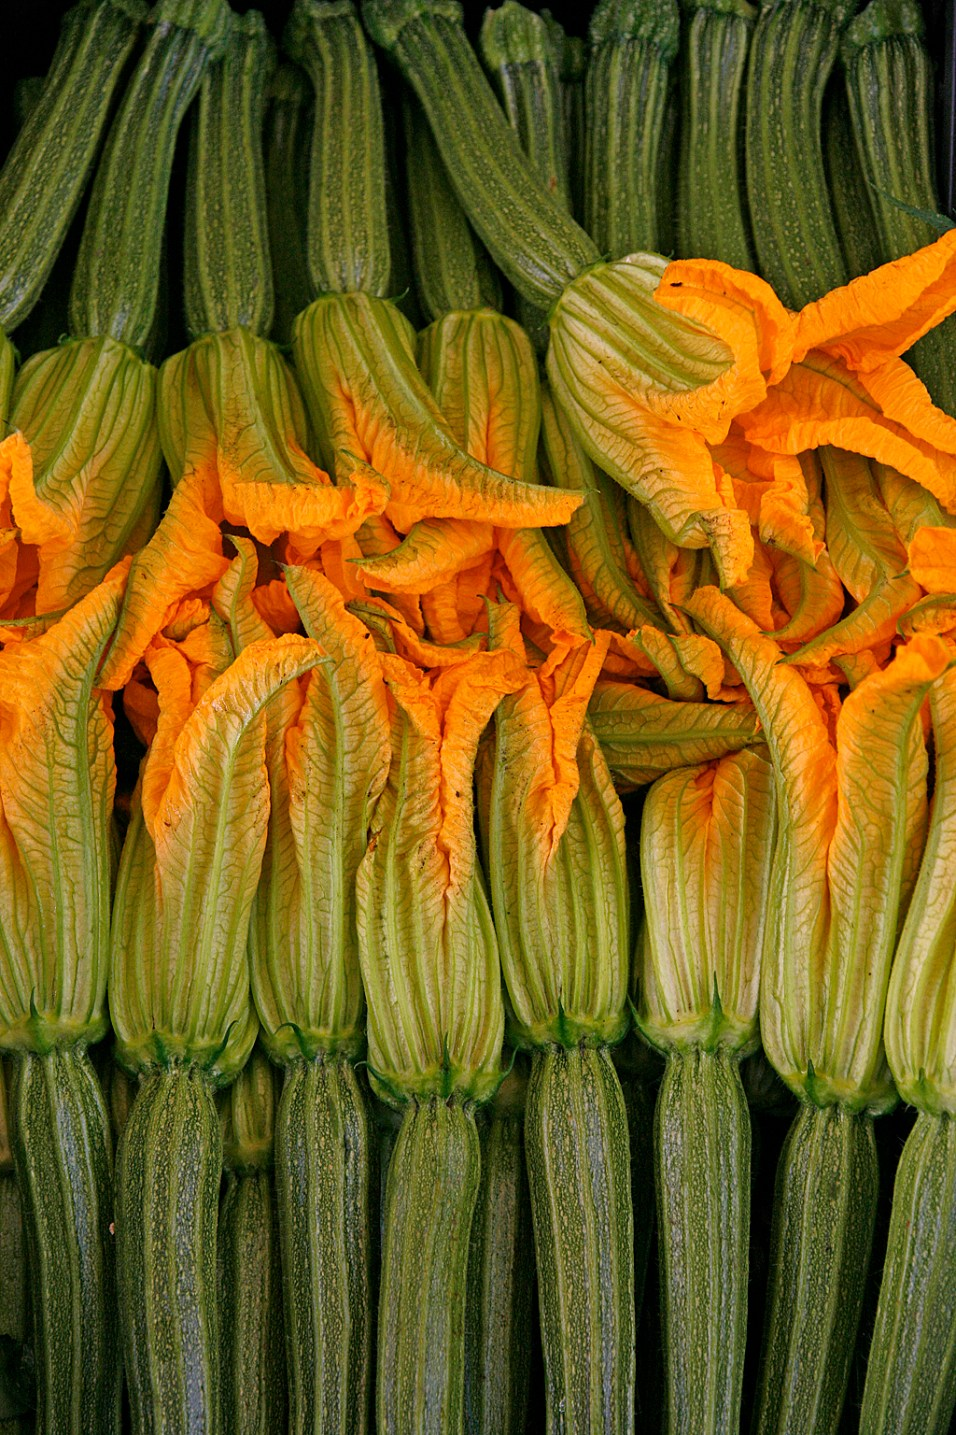 Young zucchini with flowers.